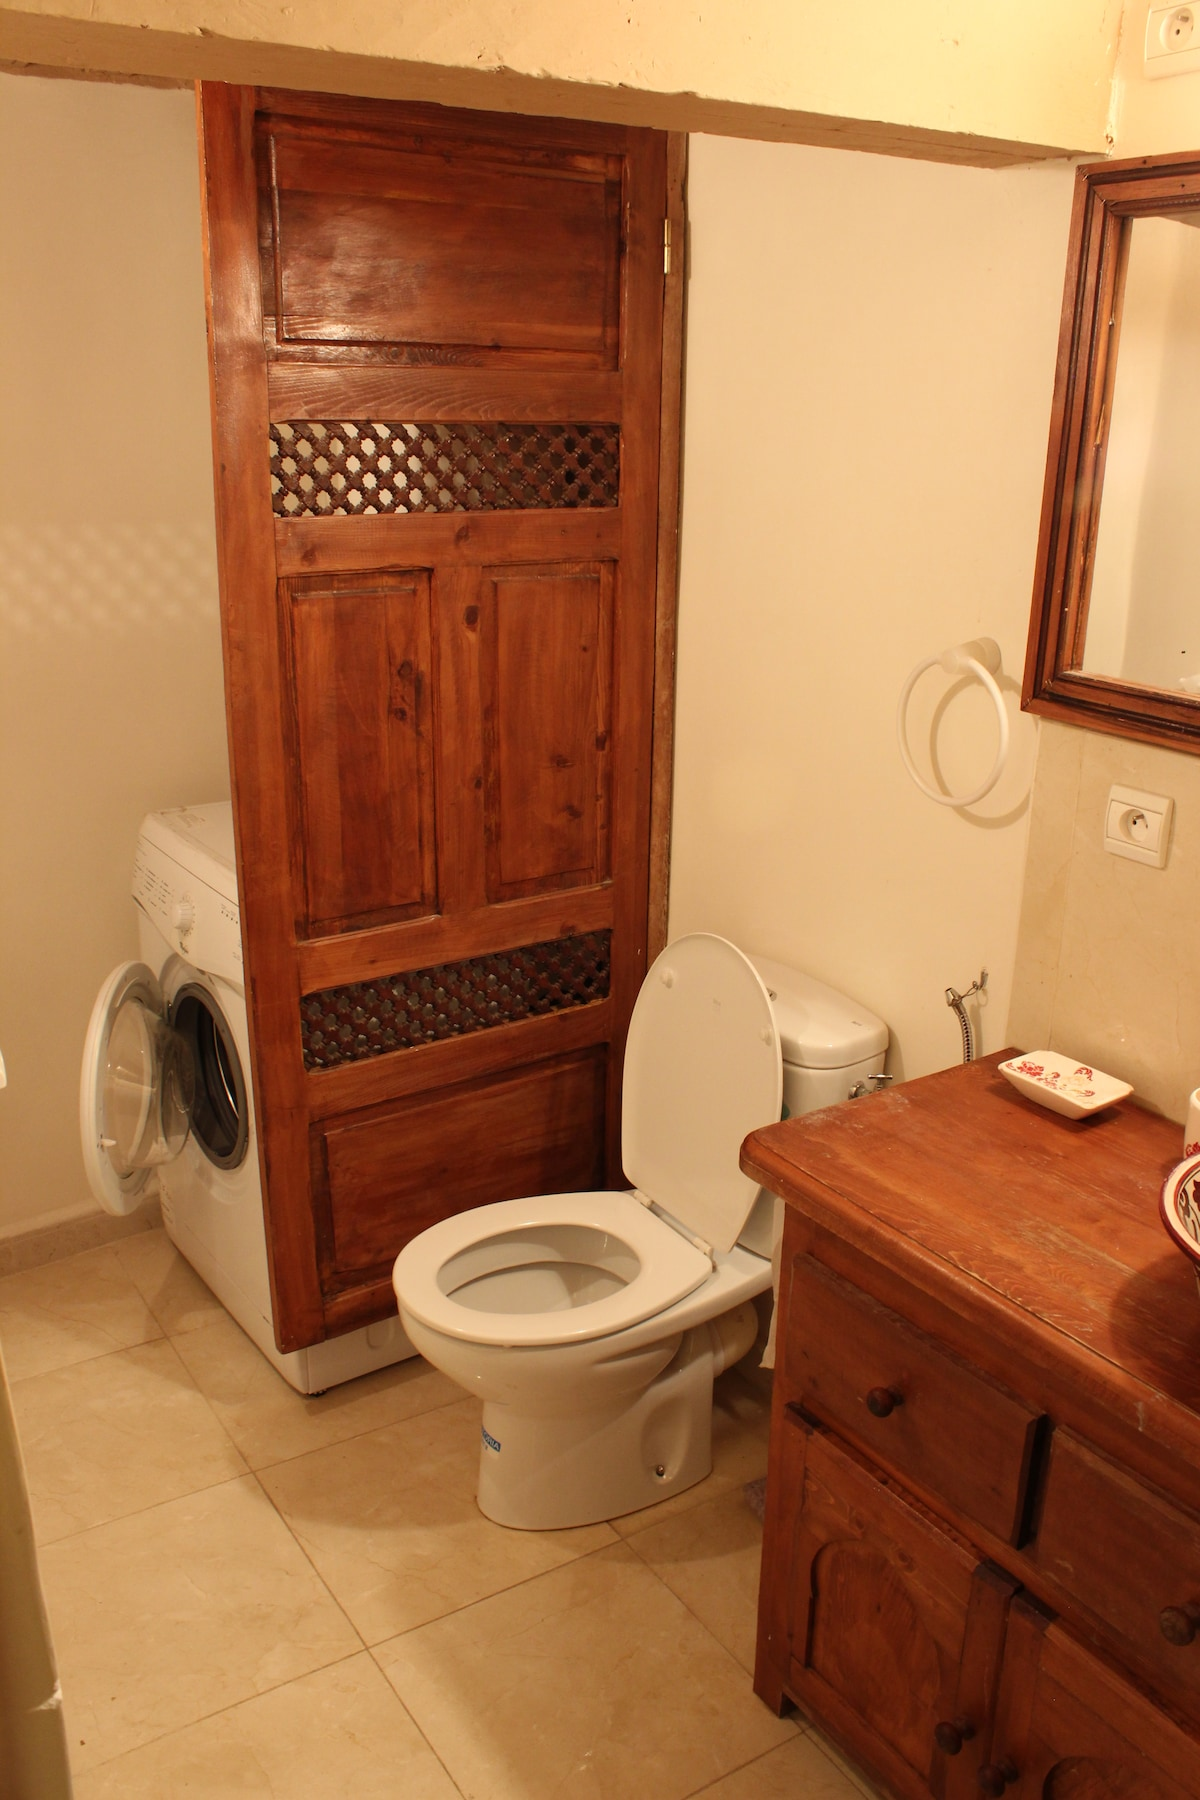 Western style bathroom also has a washing machine and hot water system.